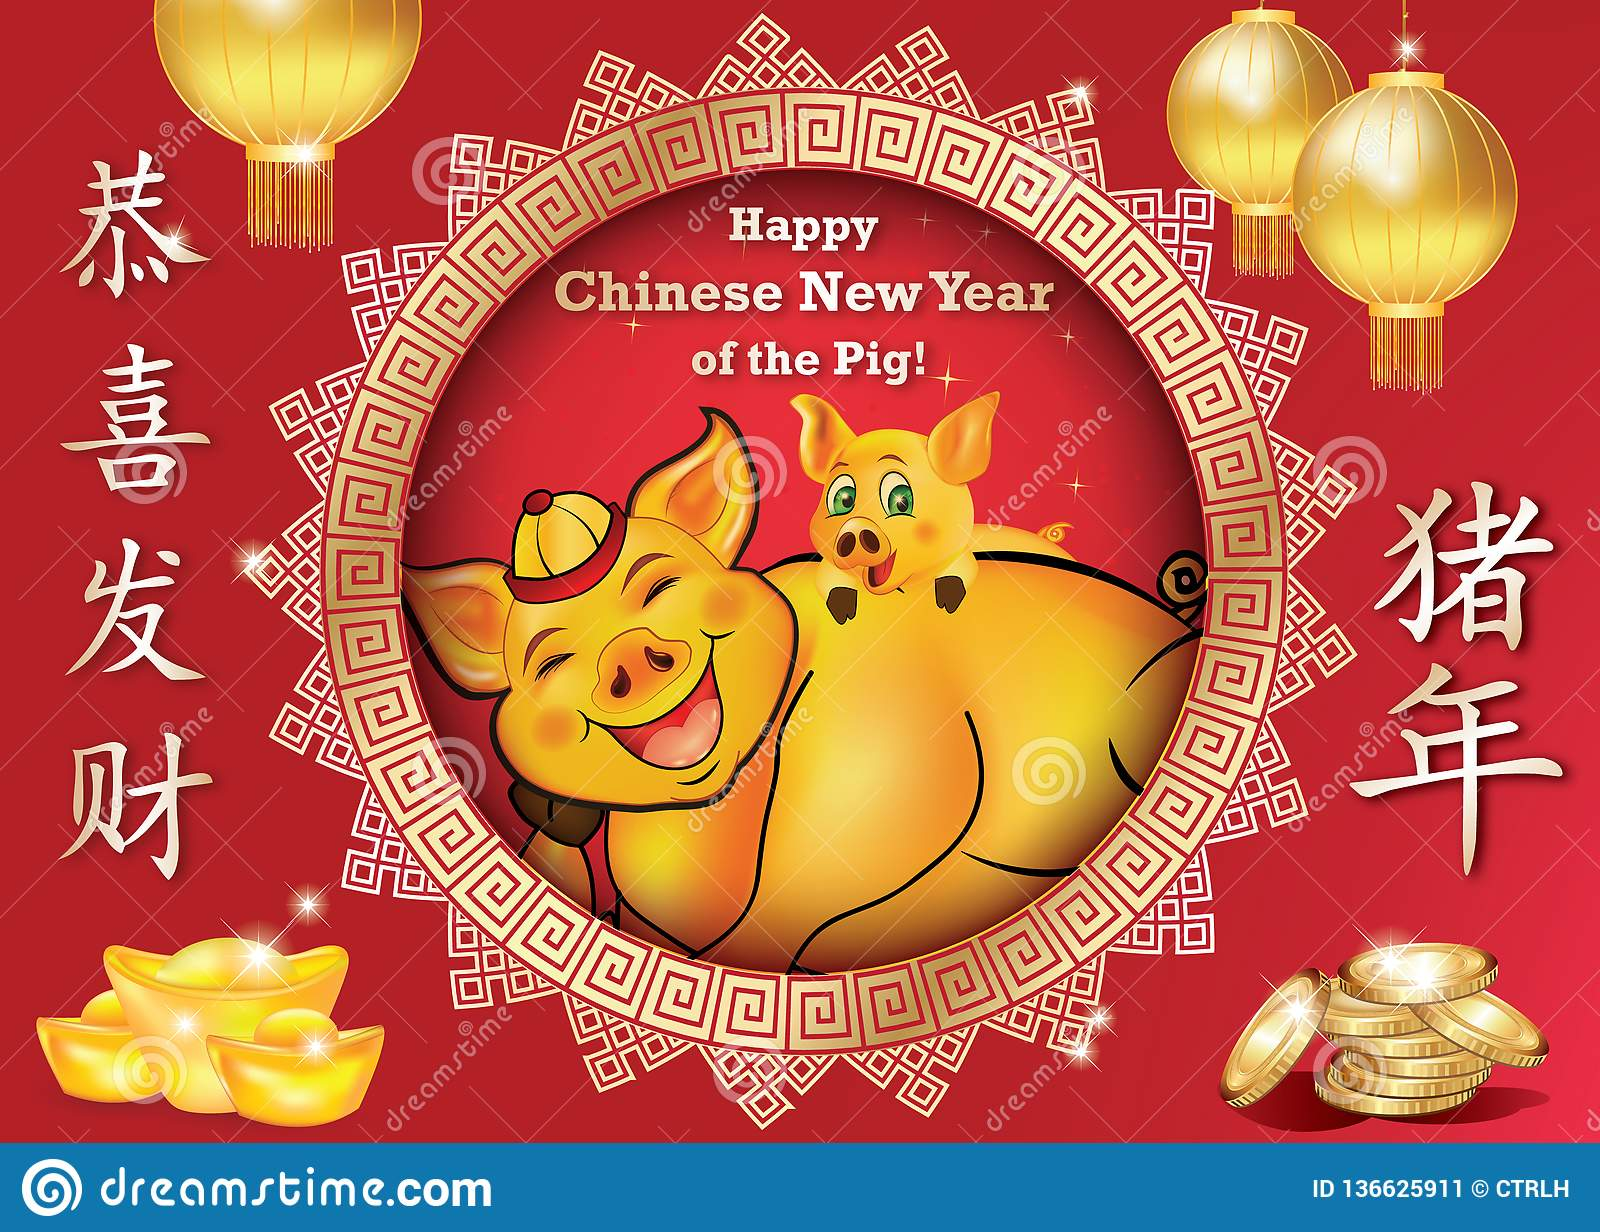 Happy Chinese New Year Of The Pig 2019 - Greeting Card With